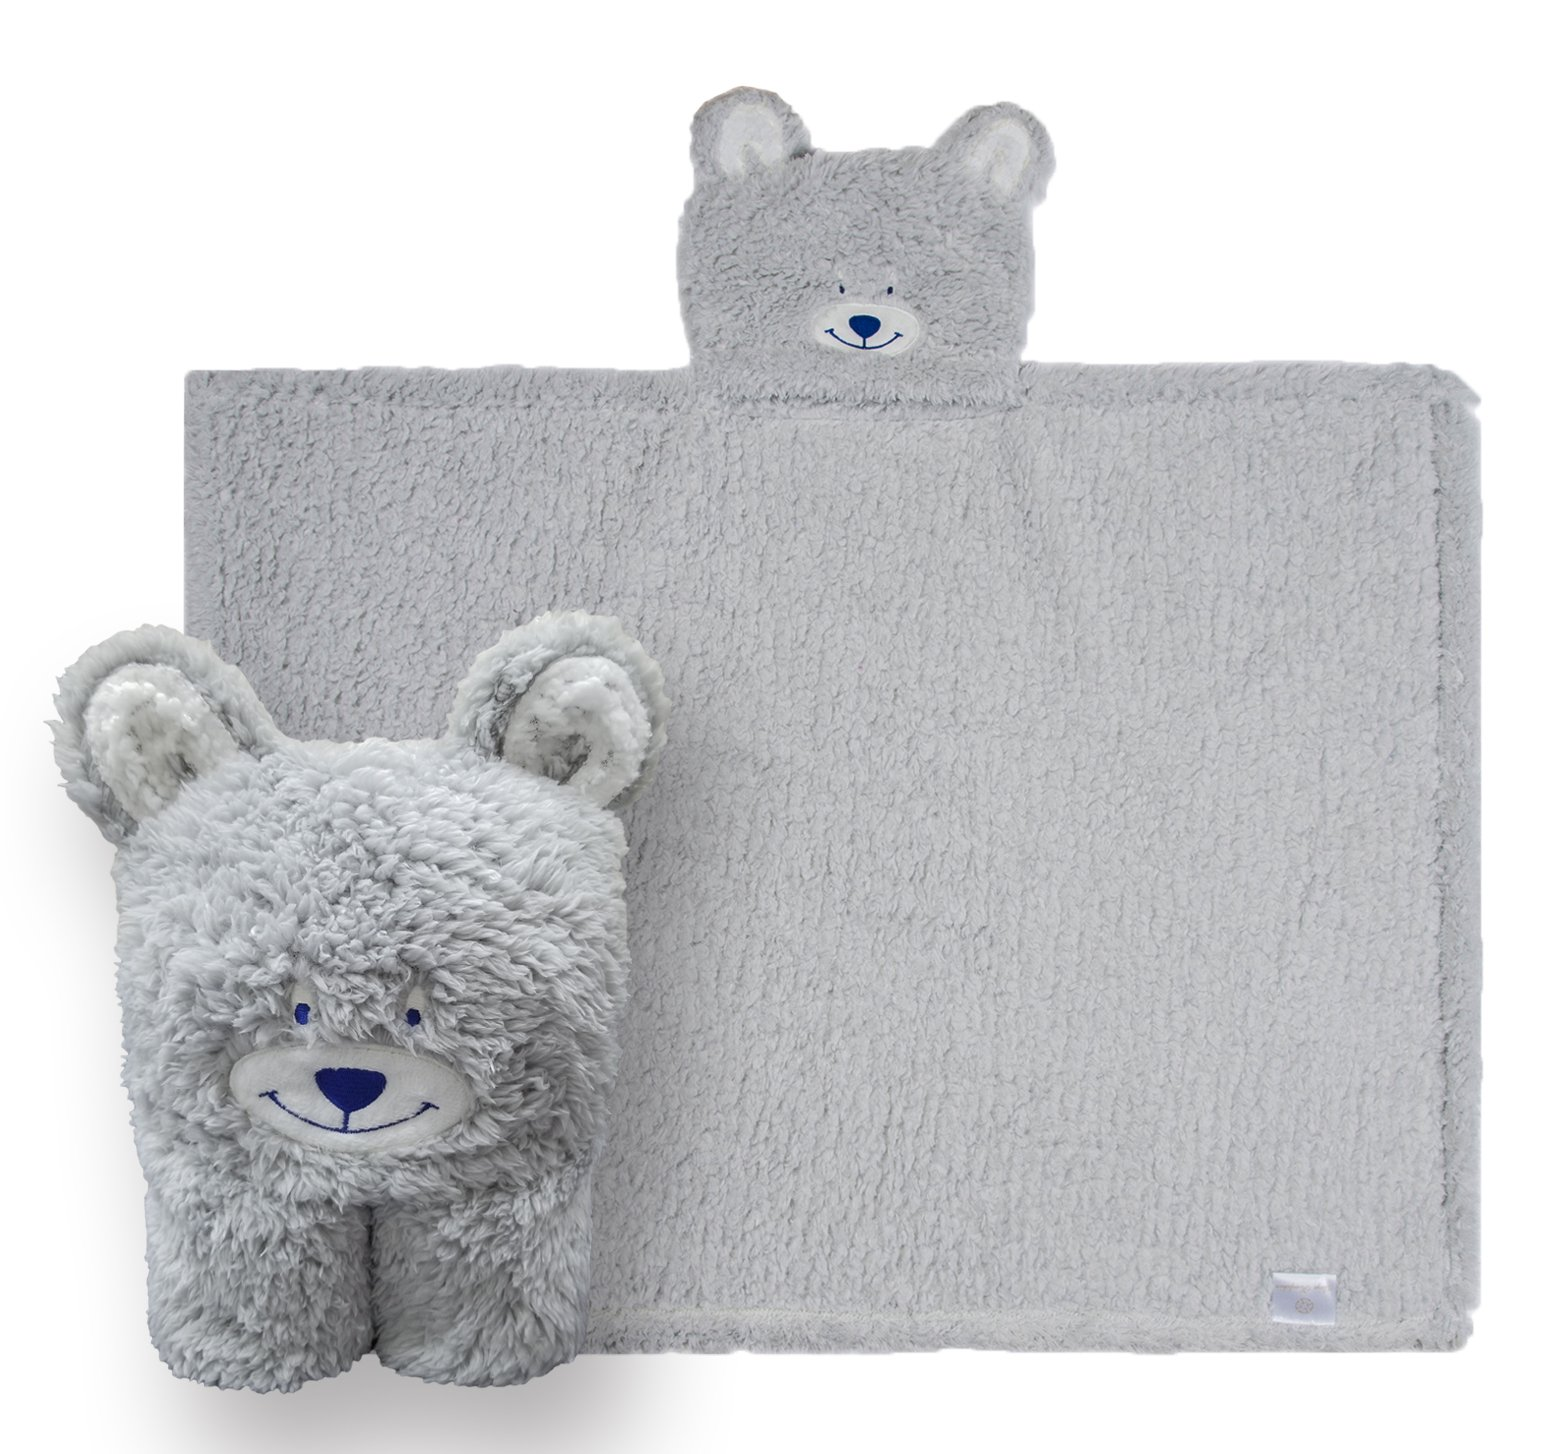 Kids Hooded Blanket,Cute Animal Bear Plush Sherpa Fleece Bath Throw,Fit 3-10 Years Old,Best Gifts for Boys and Girls